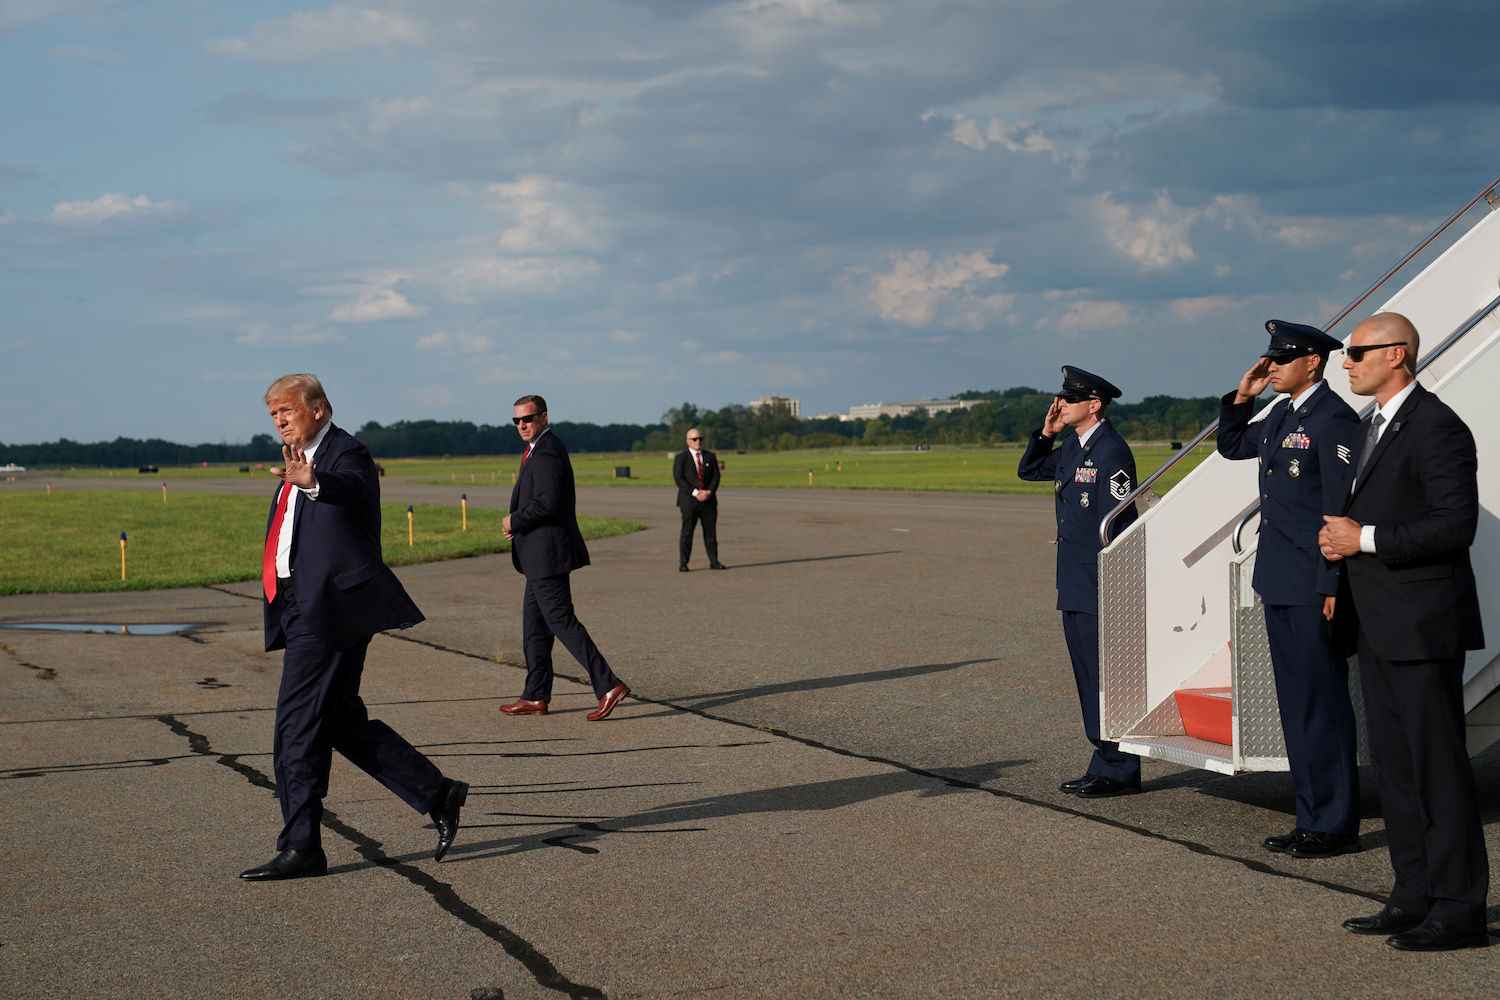 Trump says Kim Jong Un apologized for flurry of missile tests